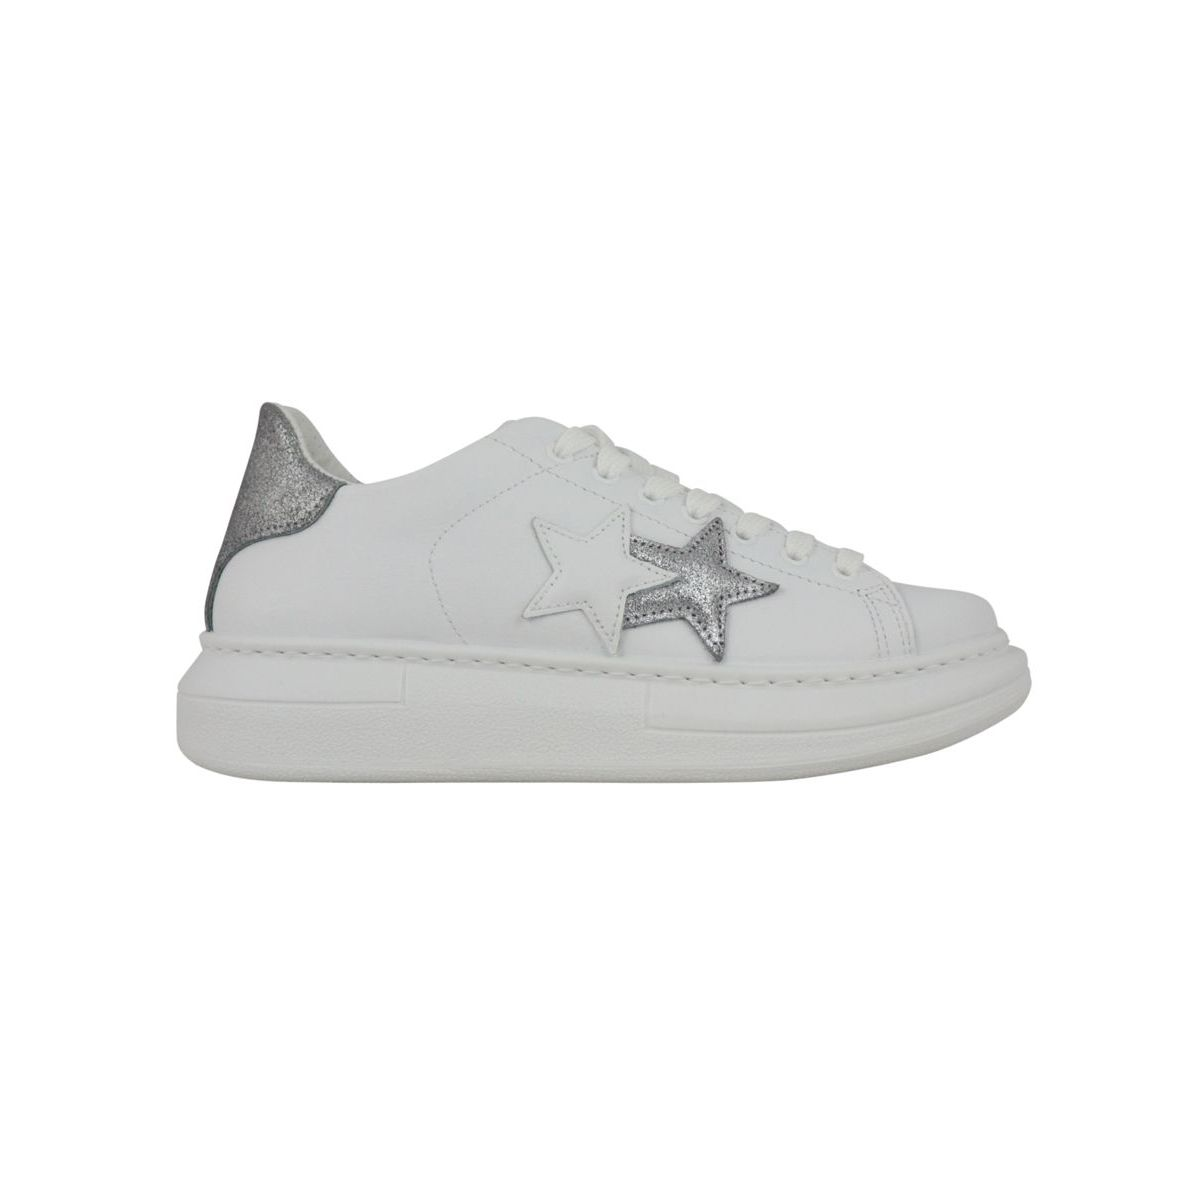 Sneakers with side logo and silver detail on the back White silver 2Star